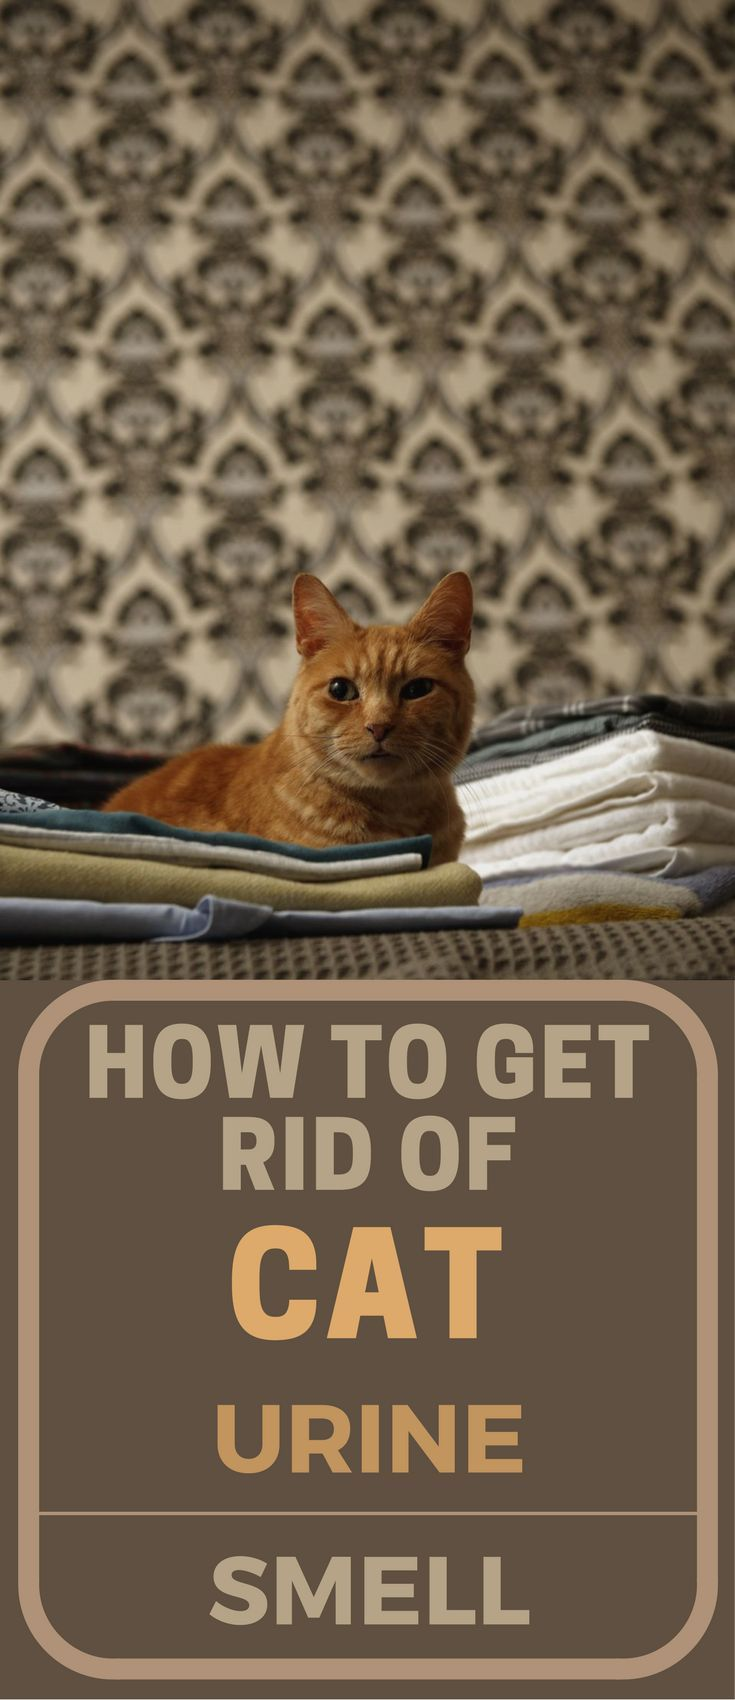 How to remove the smell of cat urine